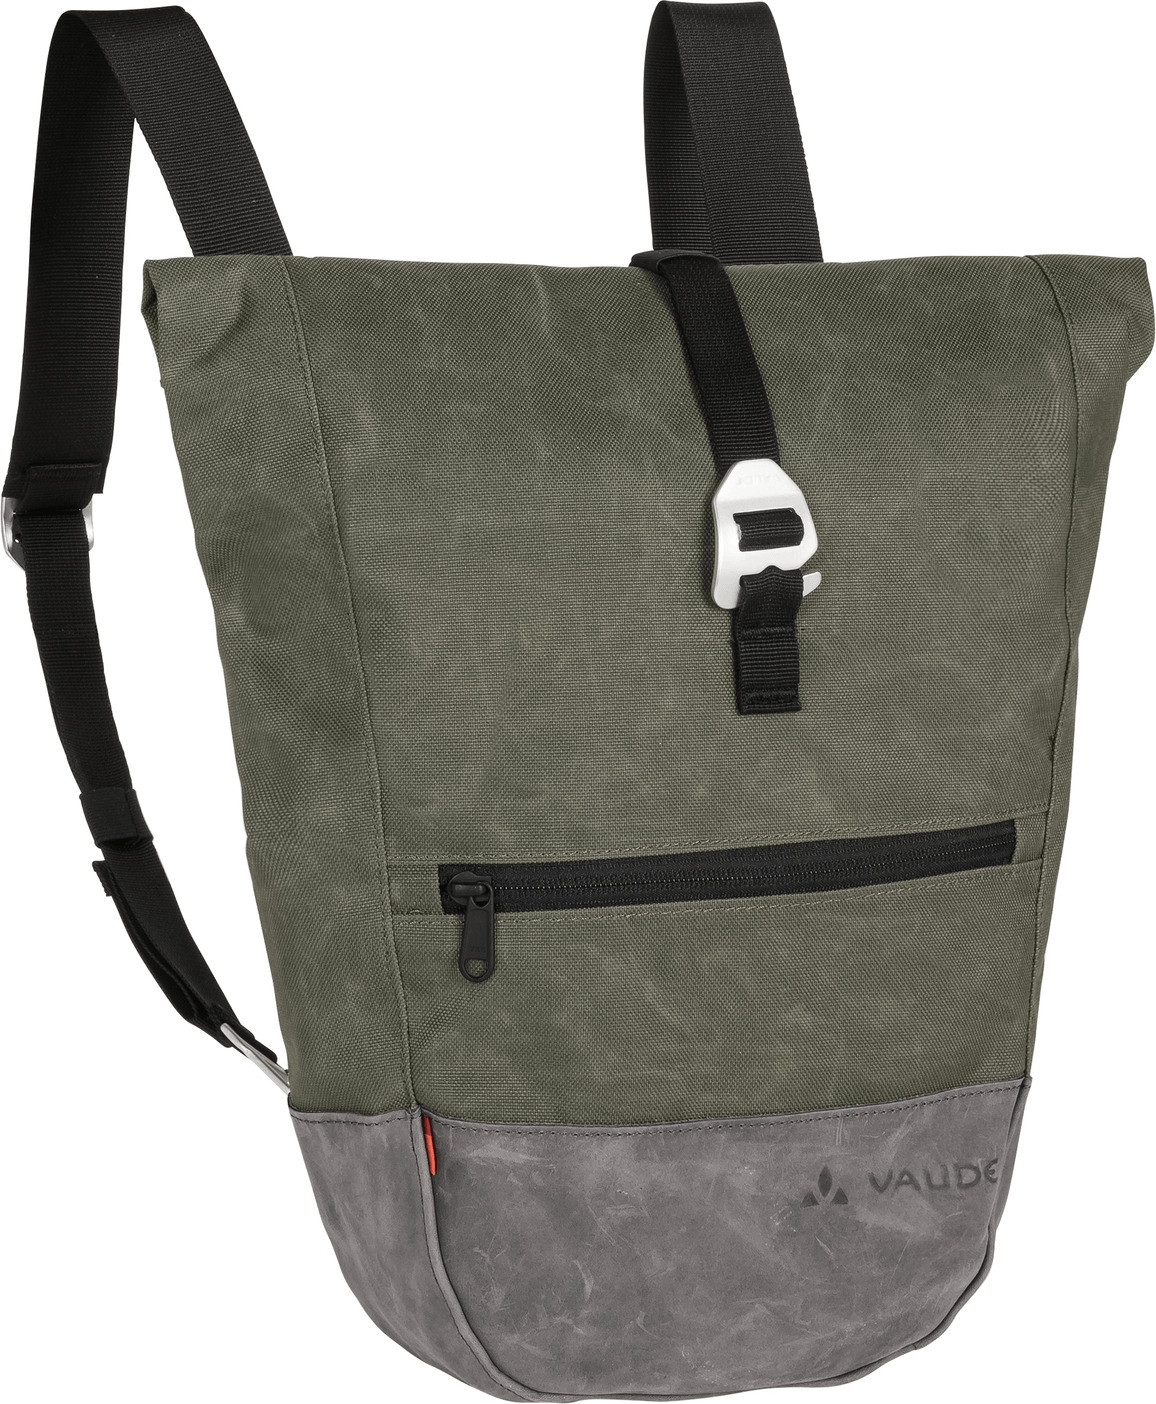 VAUDE Tobel S cedar wood